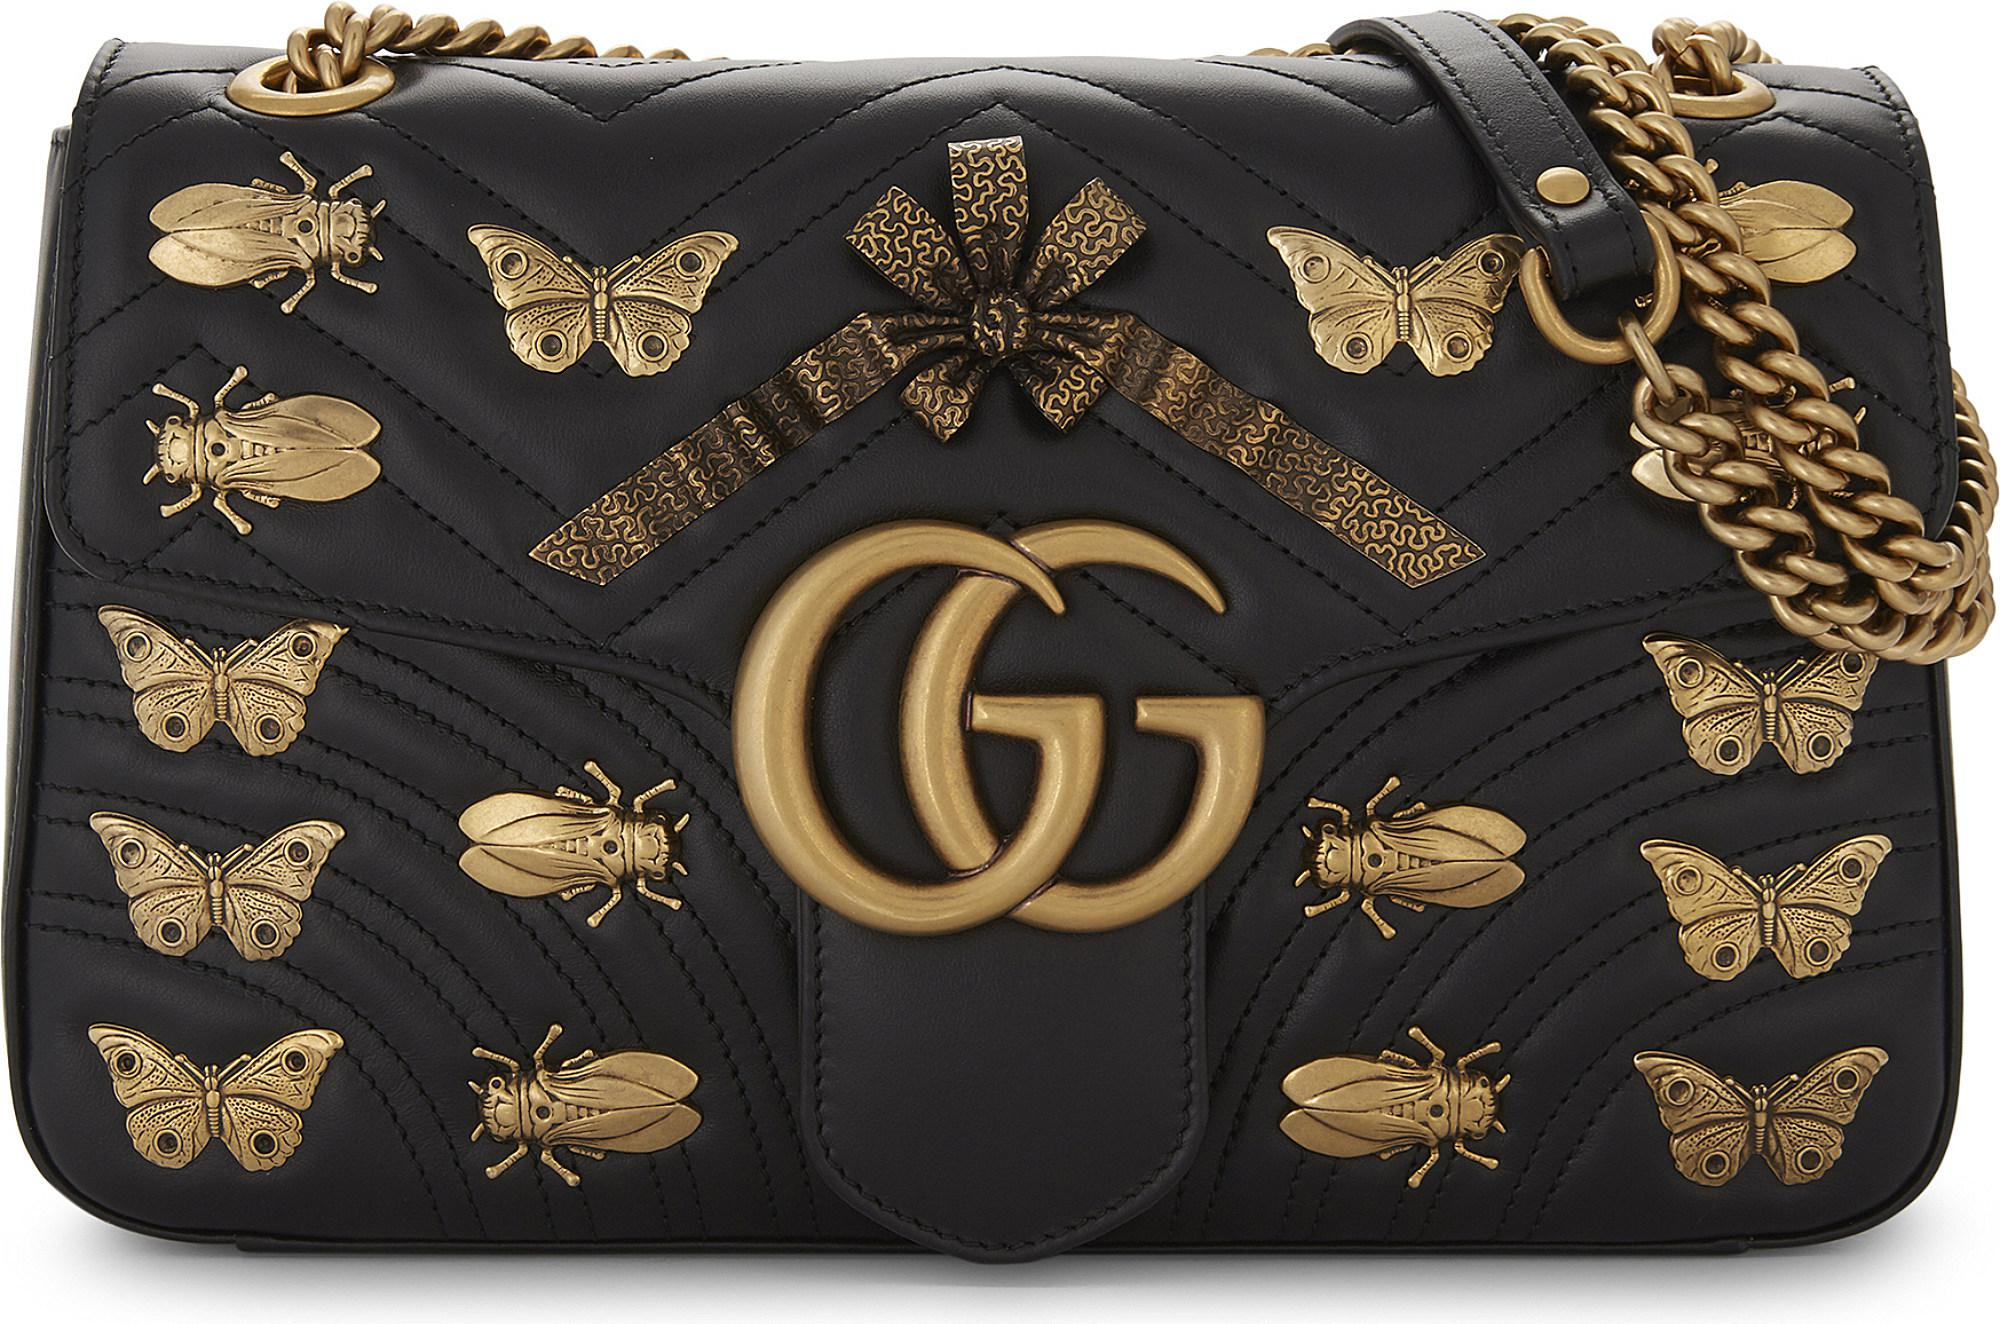 75258390c5a493 Gucci Gg Marmont Animal Stud Cross-body Bag in Black - Lyst